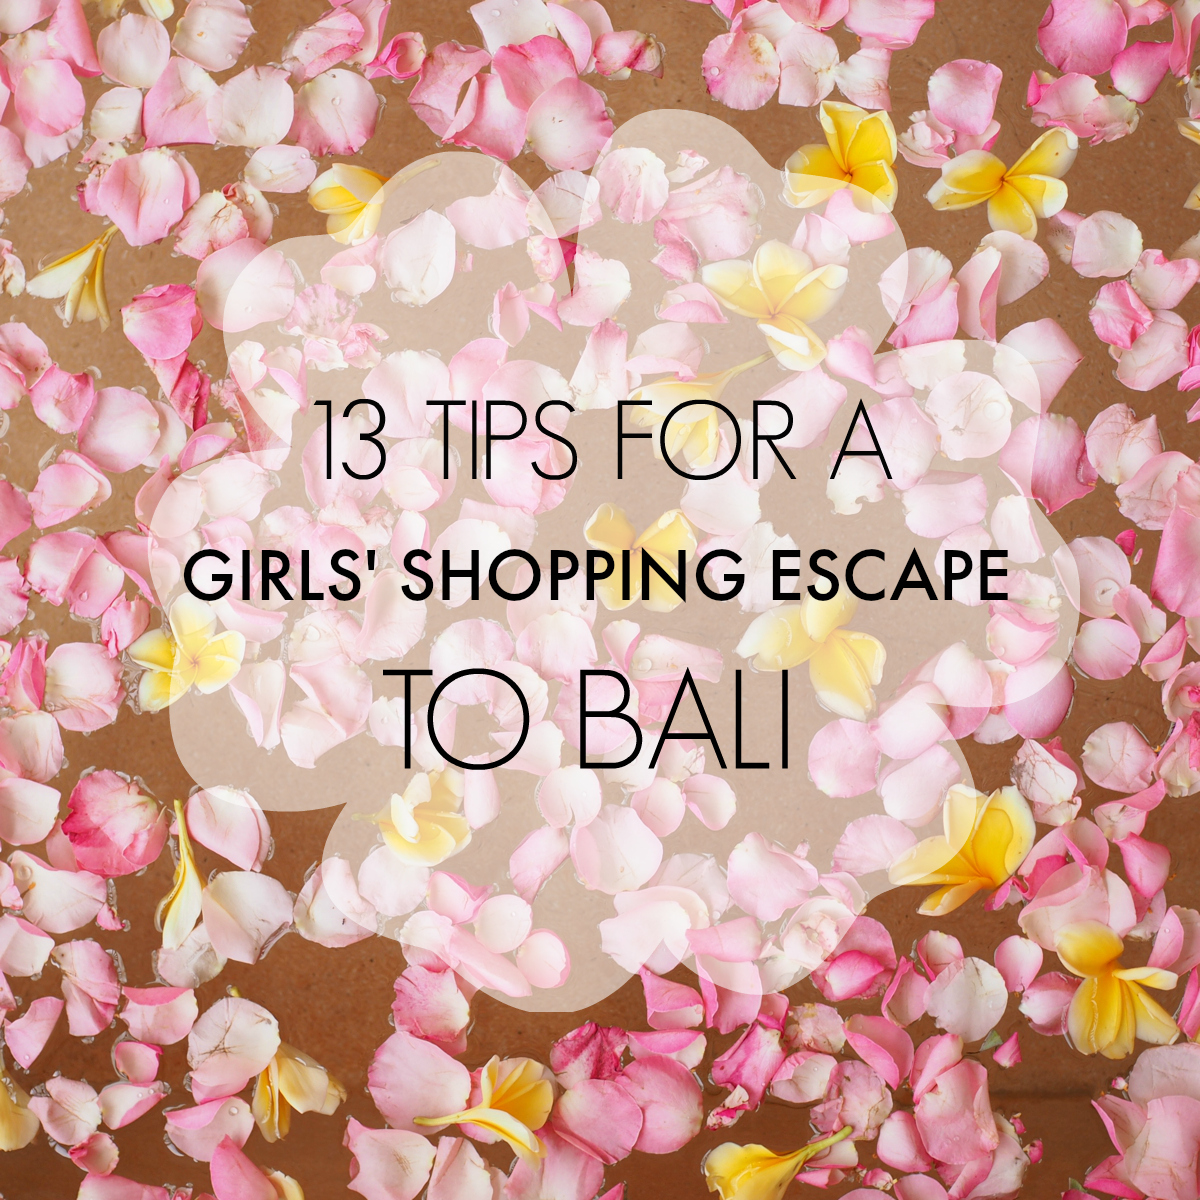 13 tips for a girls' shopping escape to Bali | Styling You